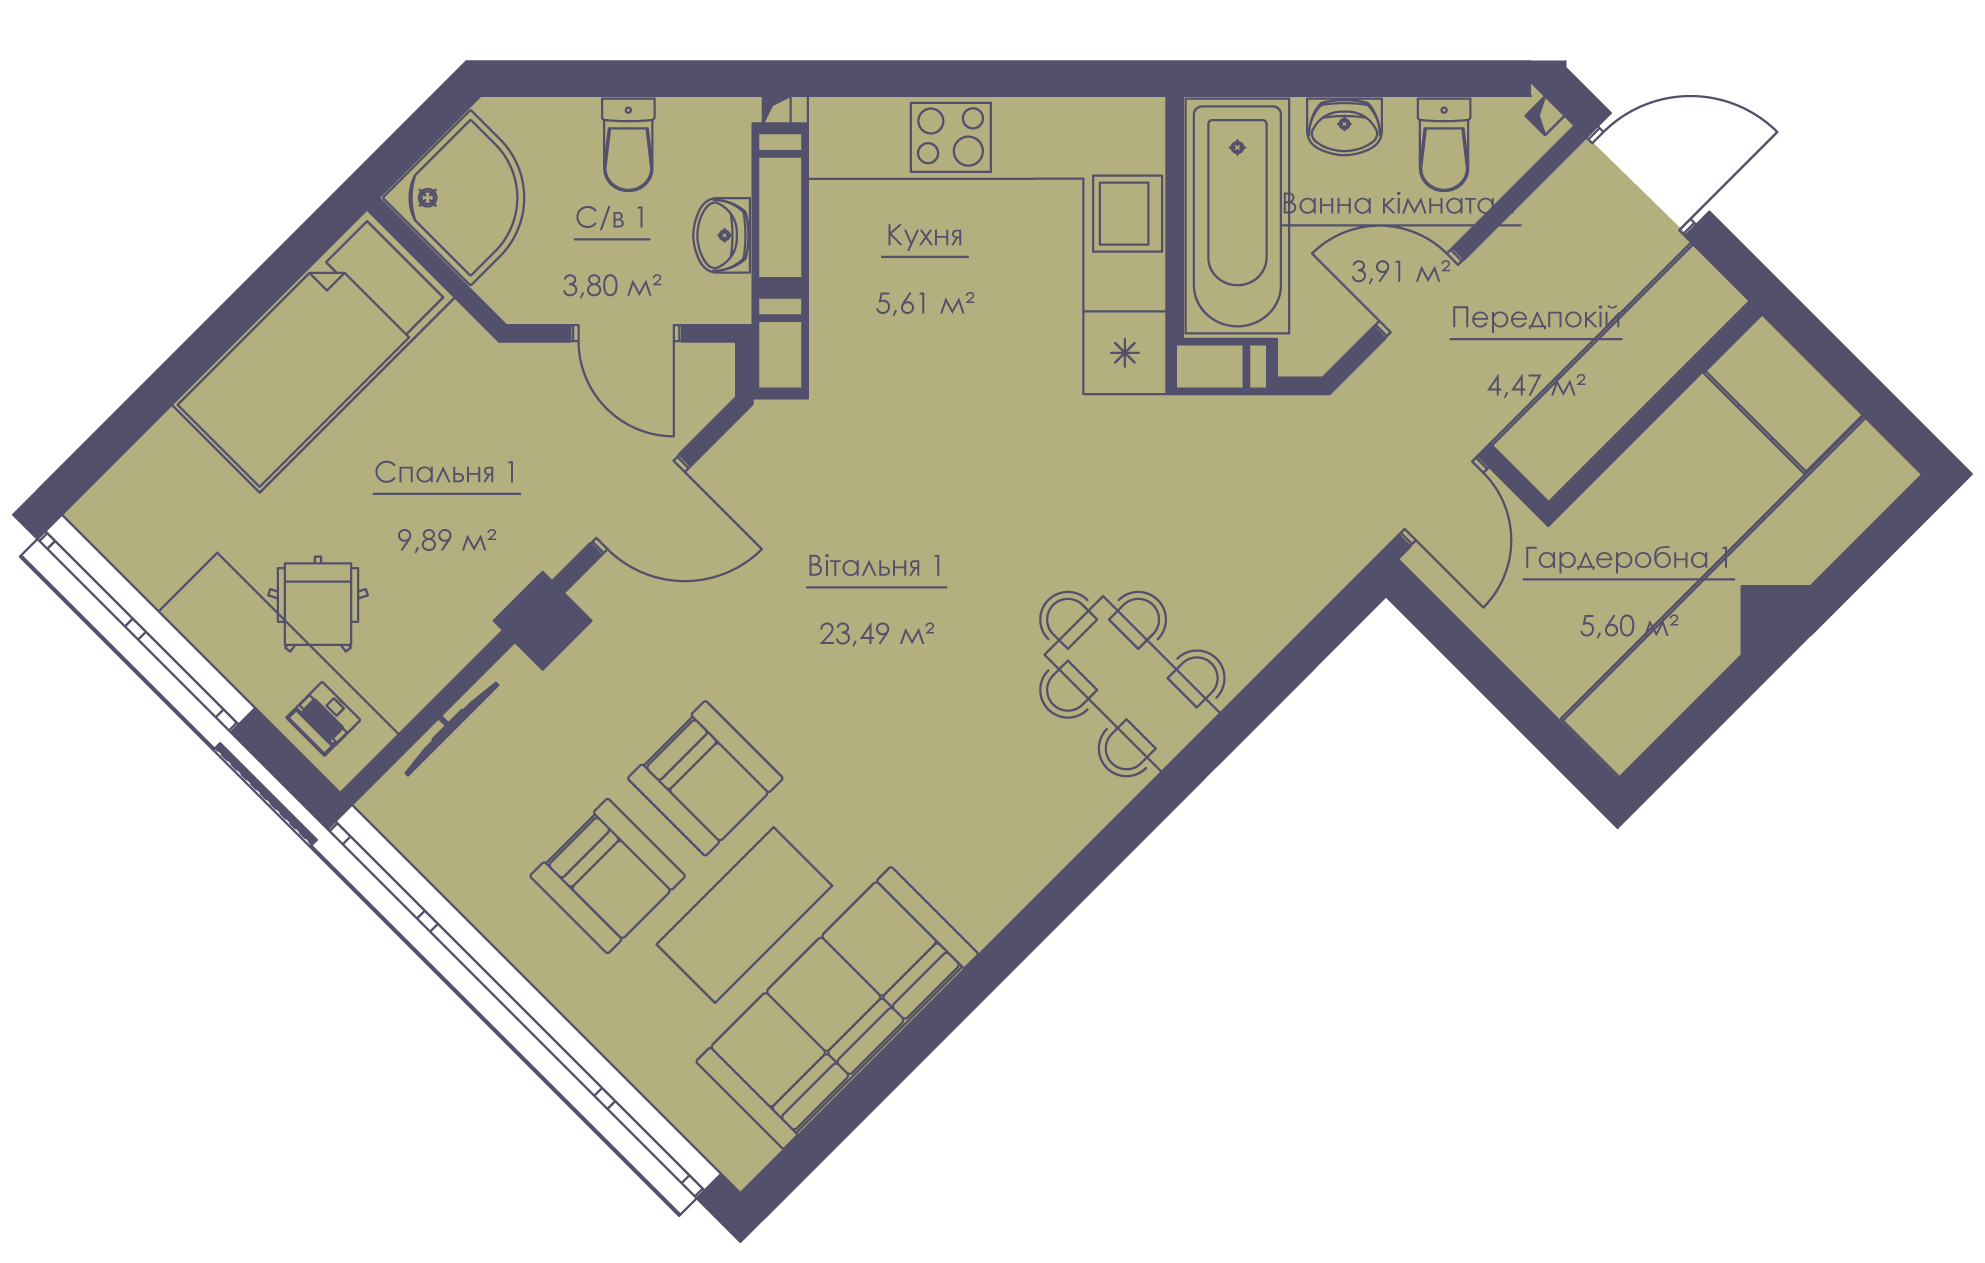 Apartment layout KV_83_2b_1_1_4-1